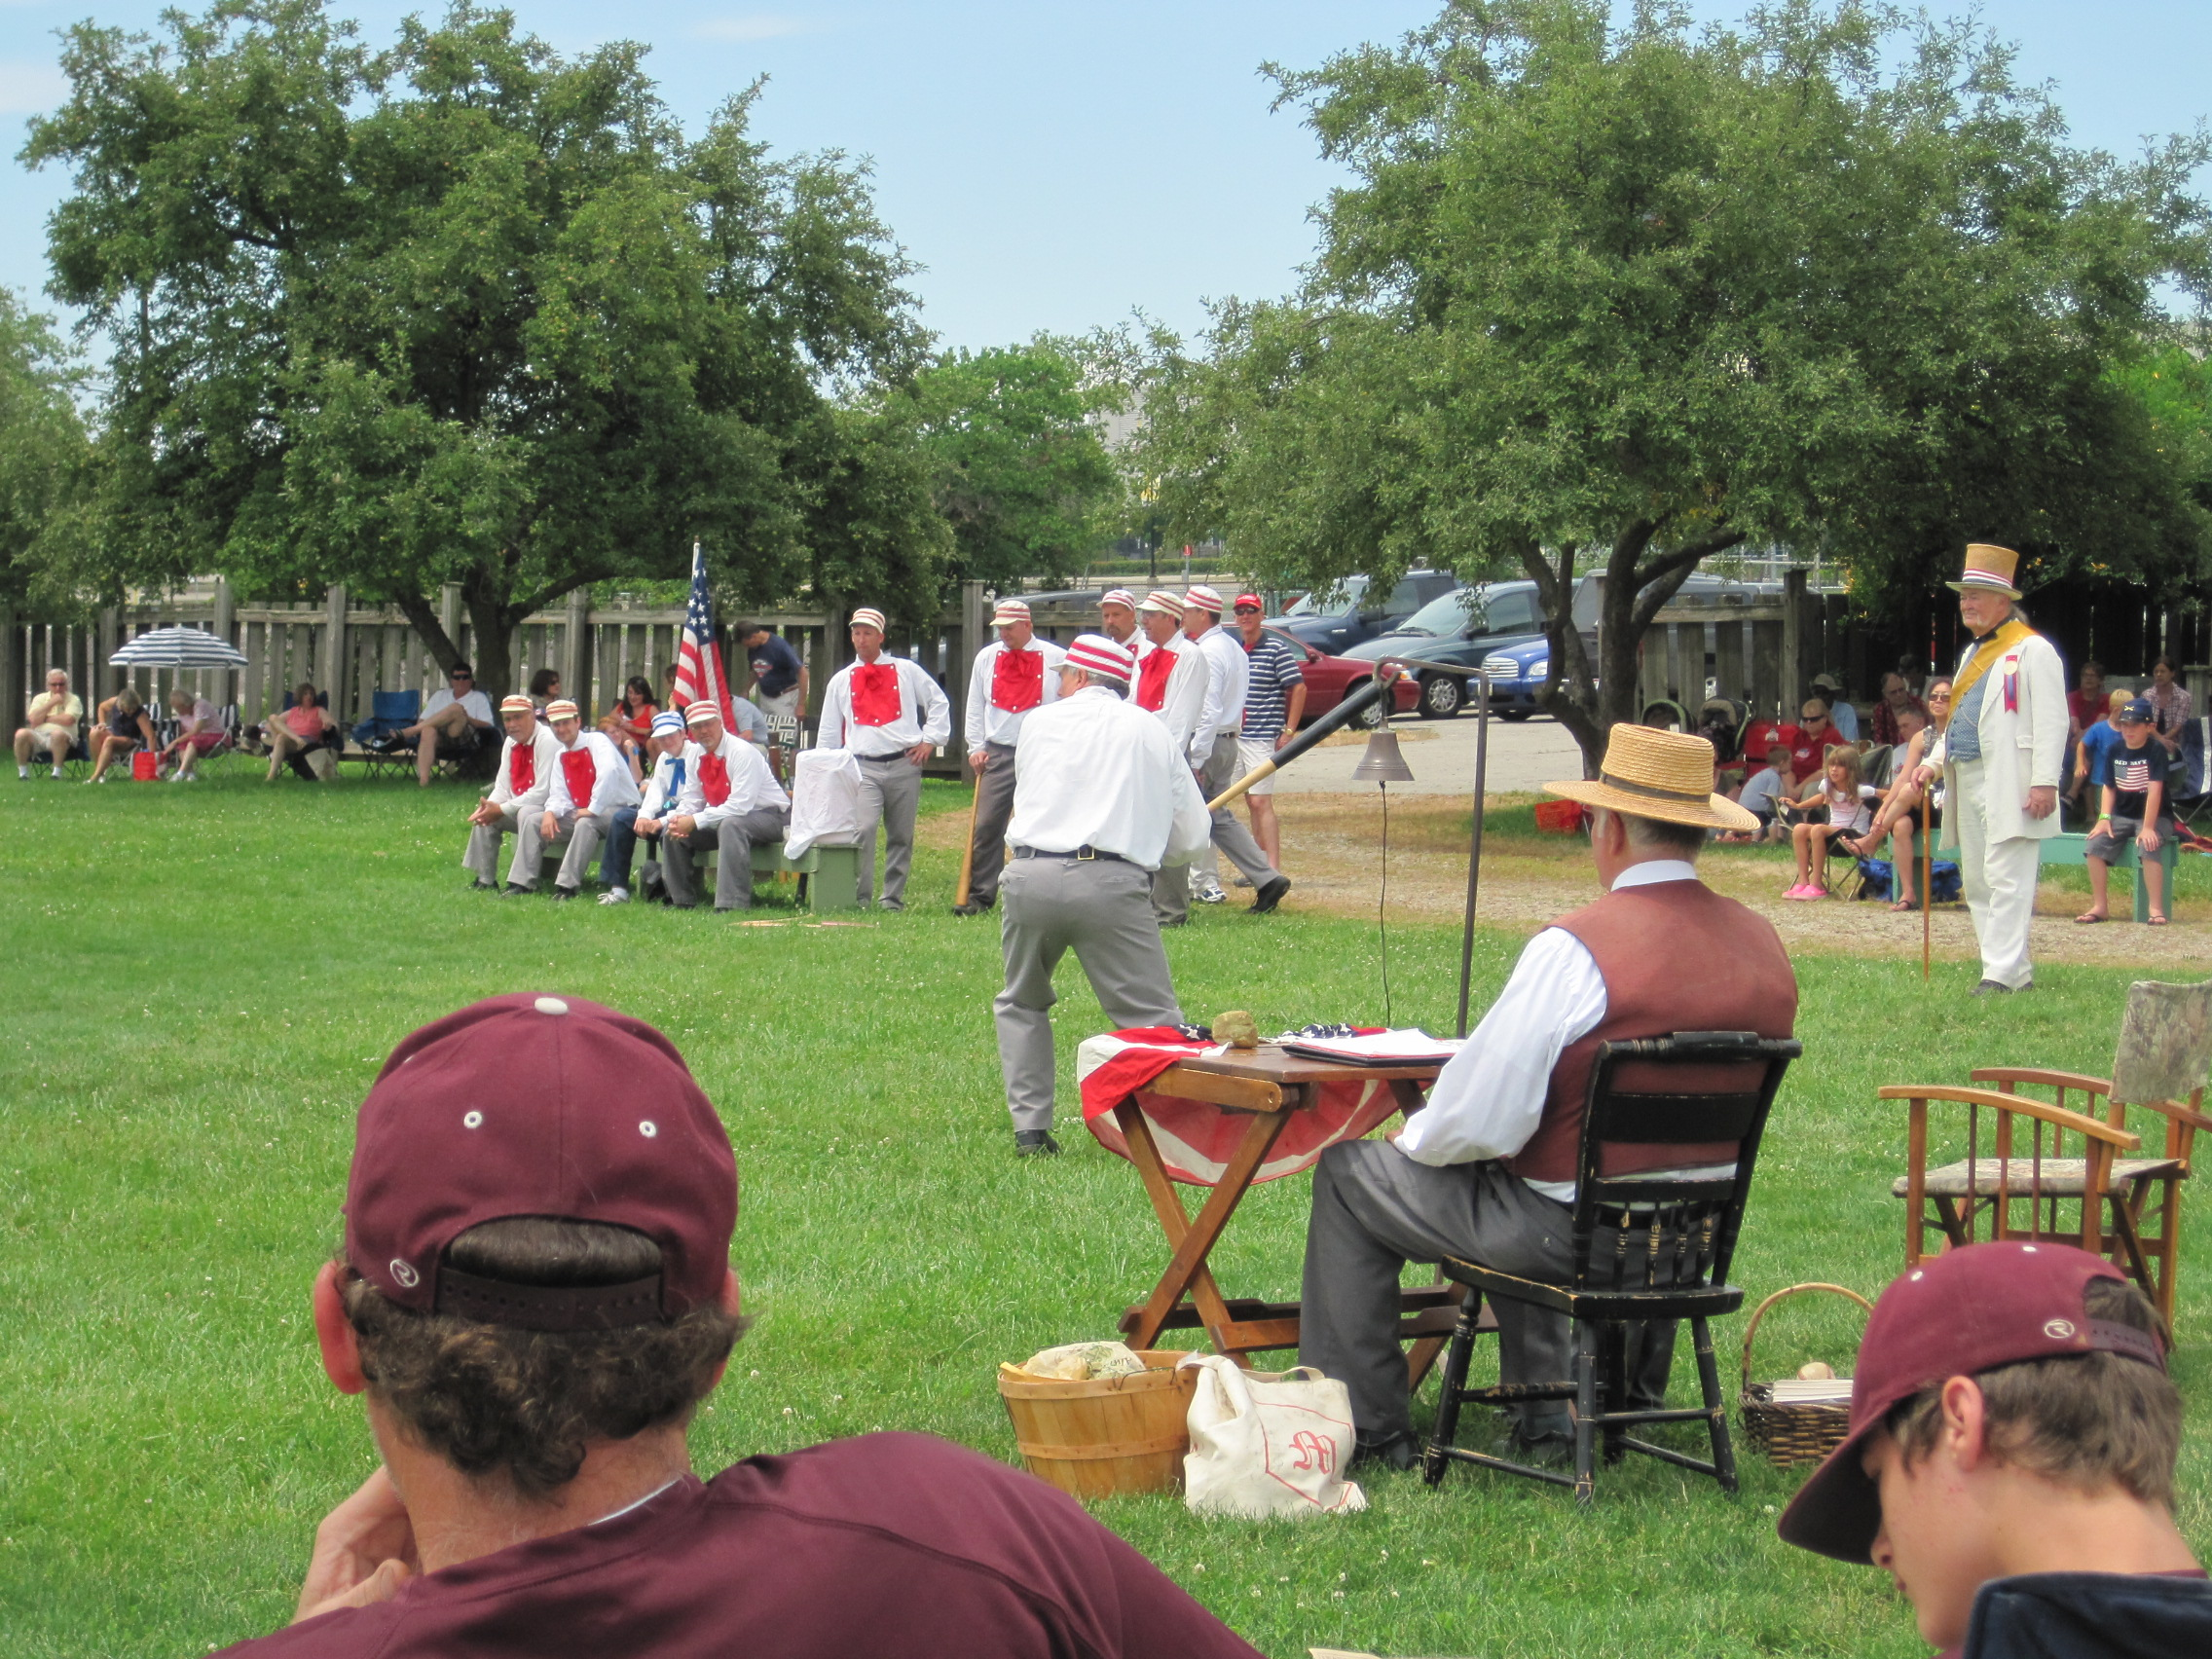 The famous Ohio Village Muffins play a game of base ball during the Glorious Fourth celebration.